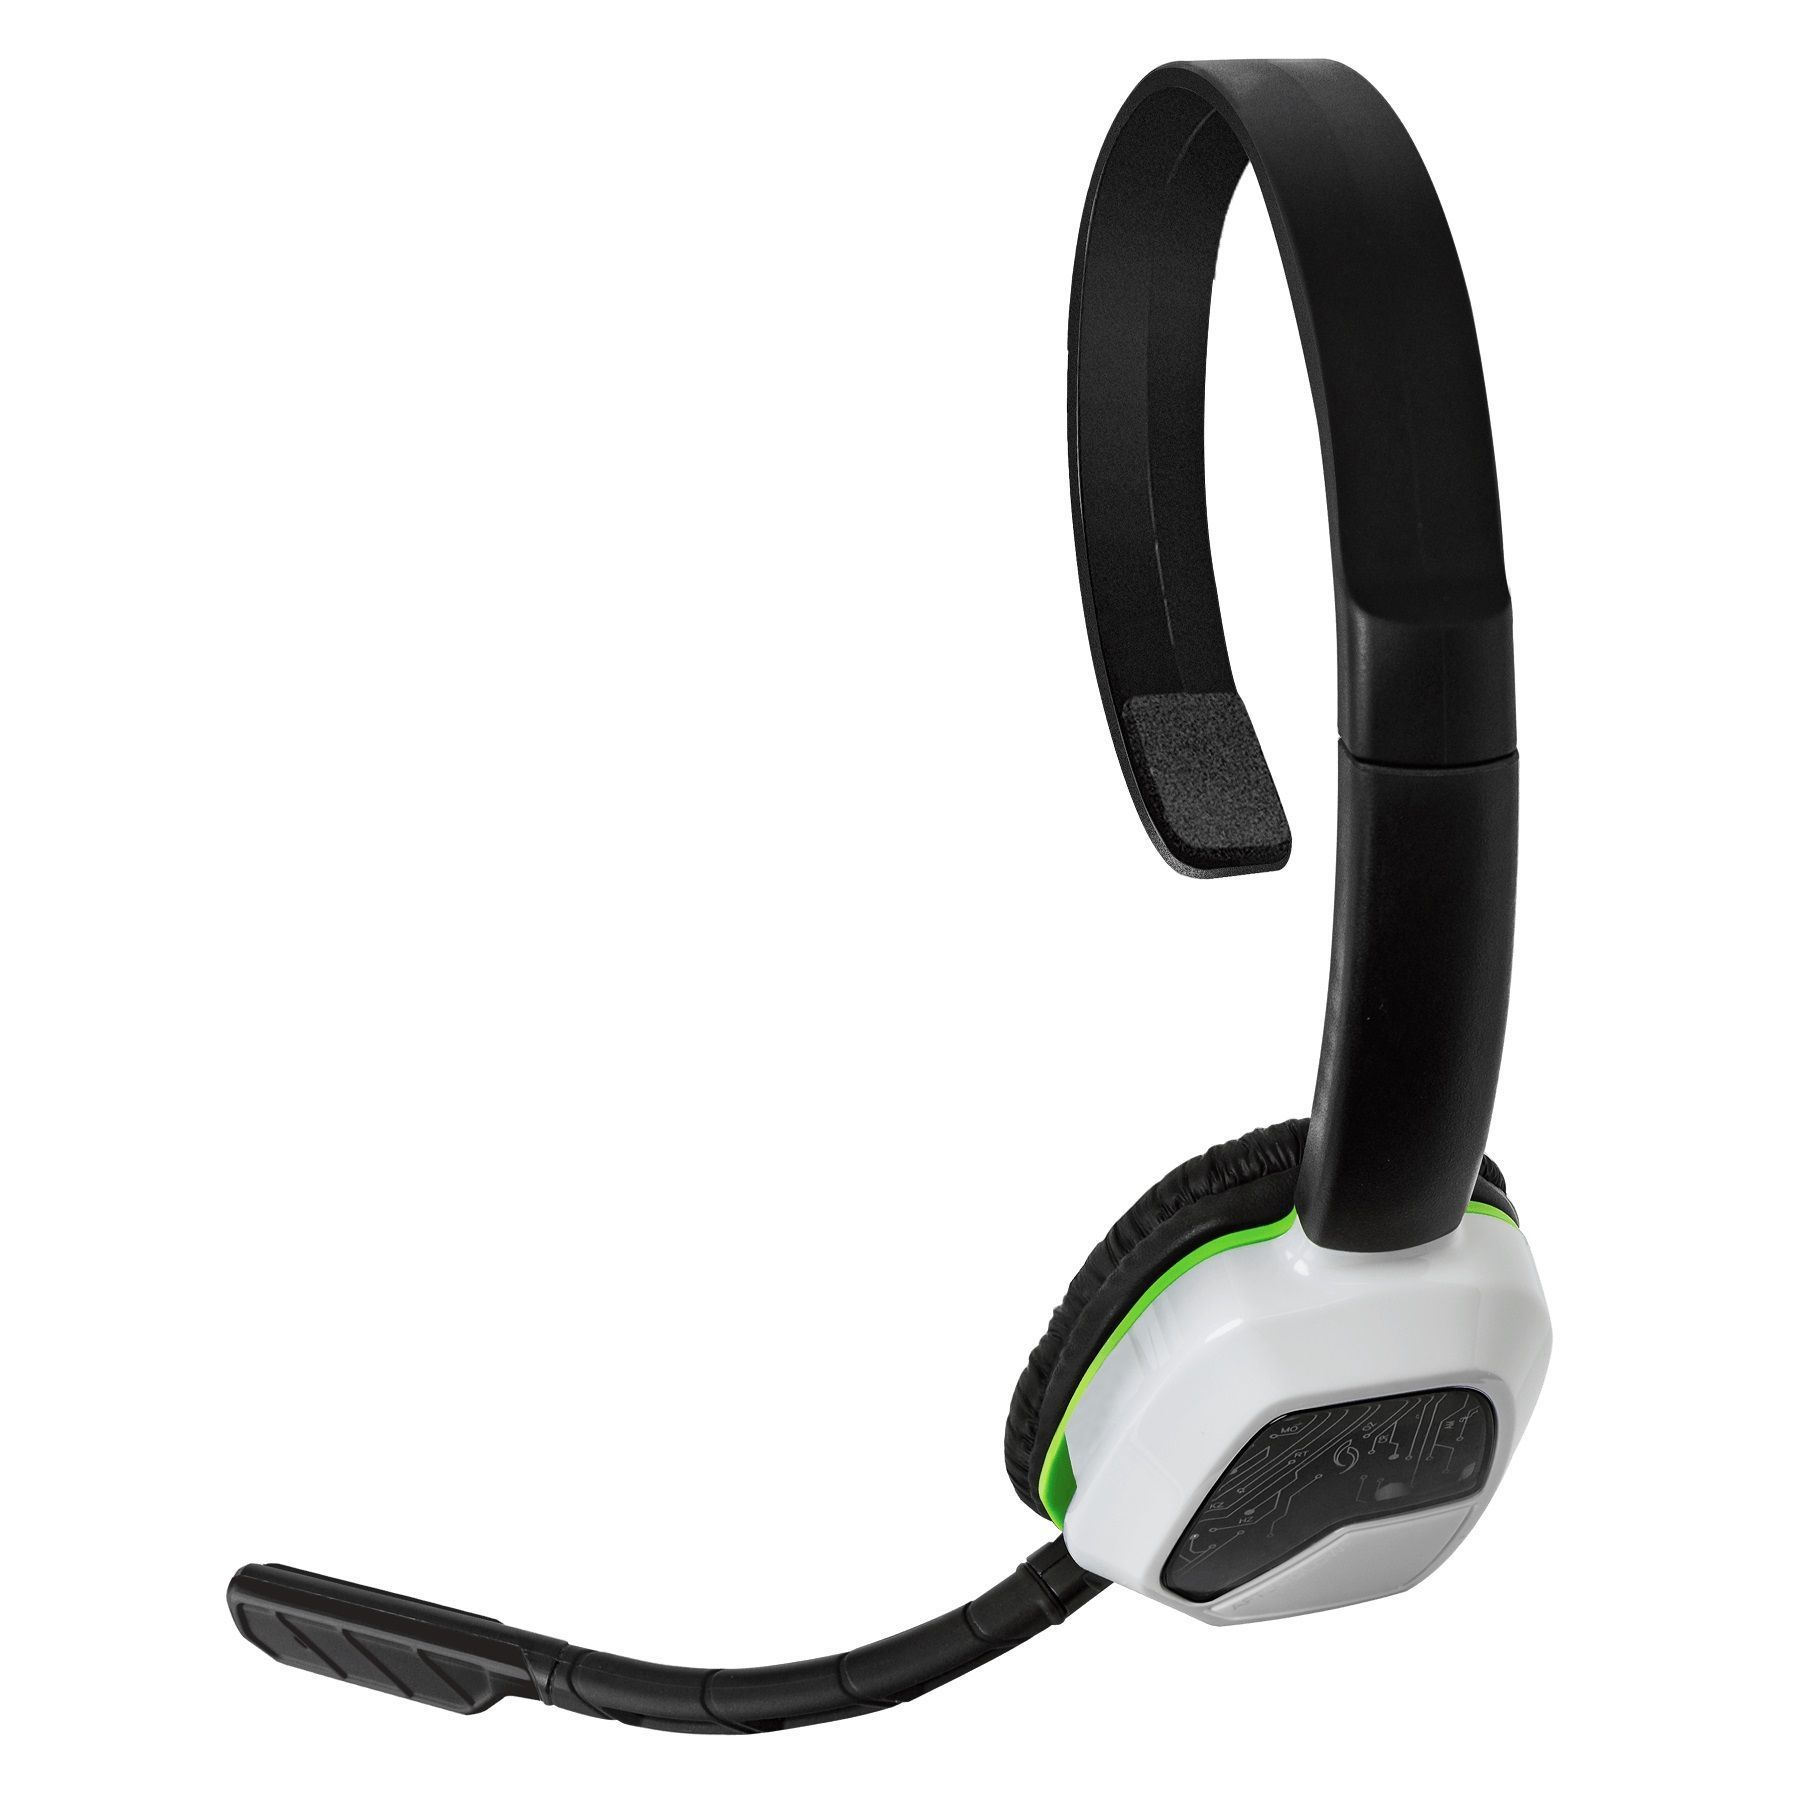 AFTERGLOW LVL 1 White Wired Chat Headset for Xbox One #04...